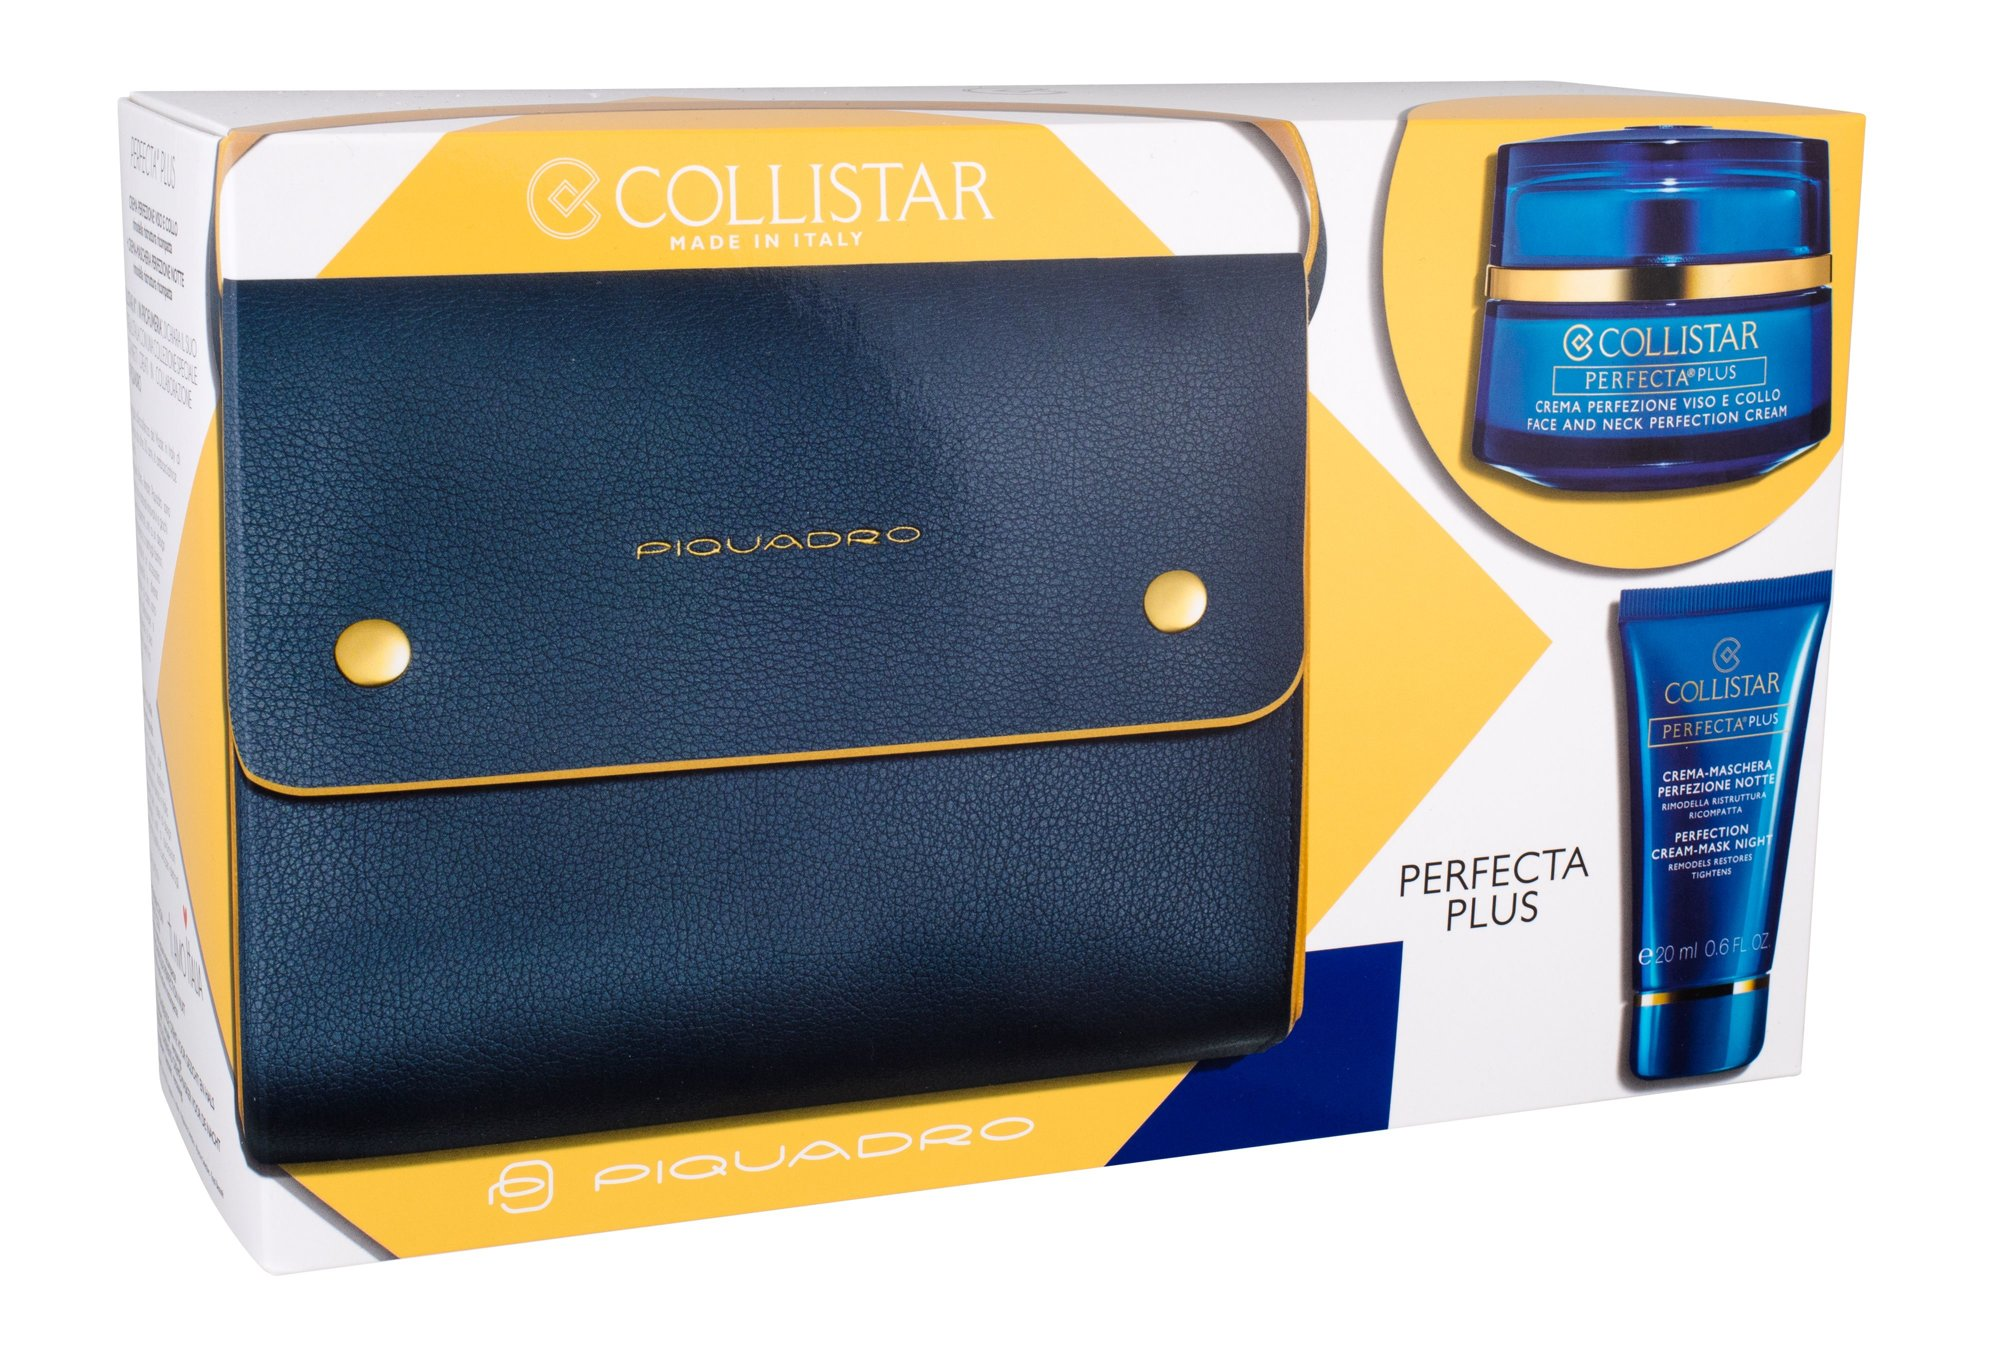 Collistar Perfecta Plus Day Cream 50ml